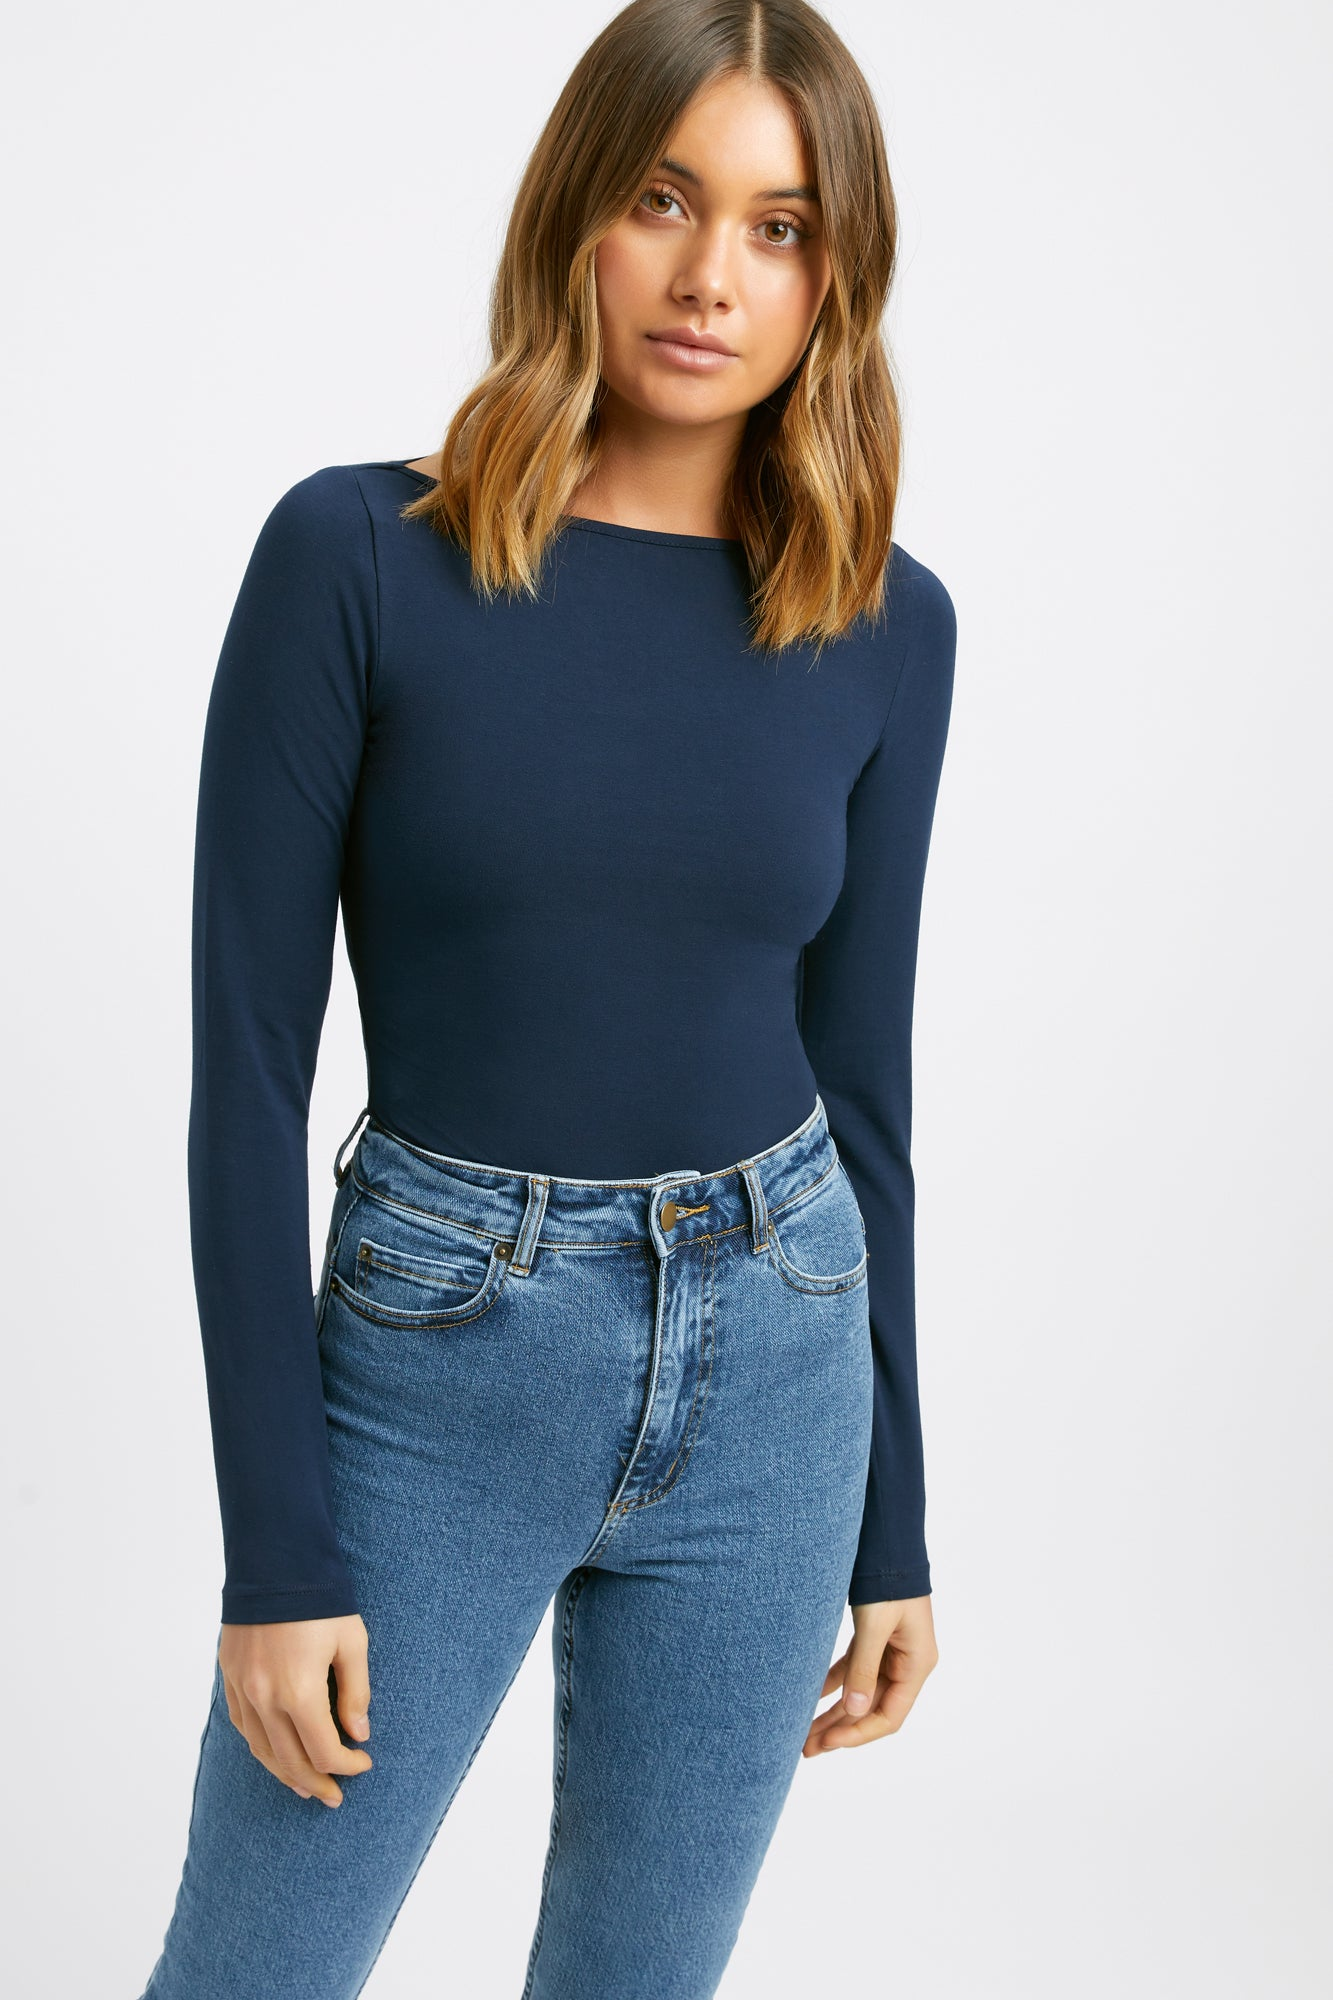 Mia Boat Long Sleeve Top